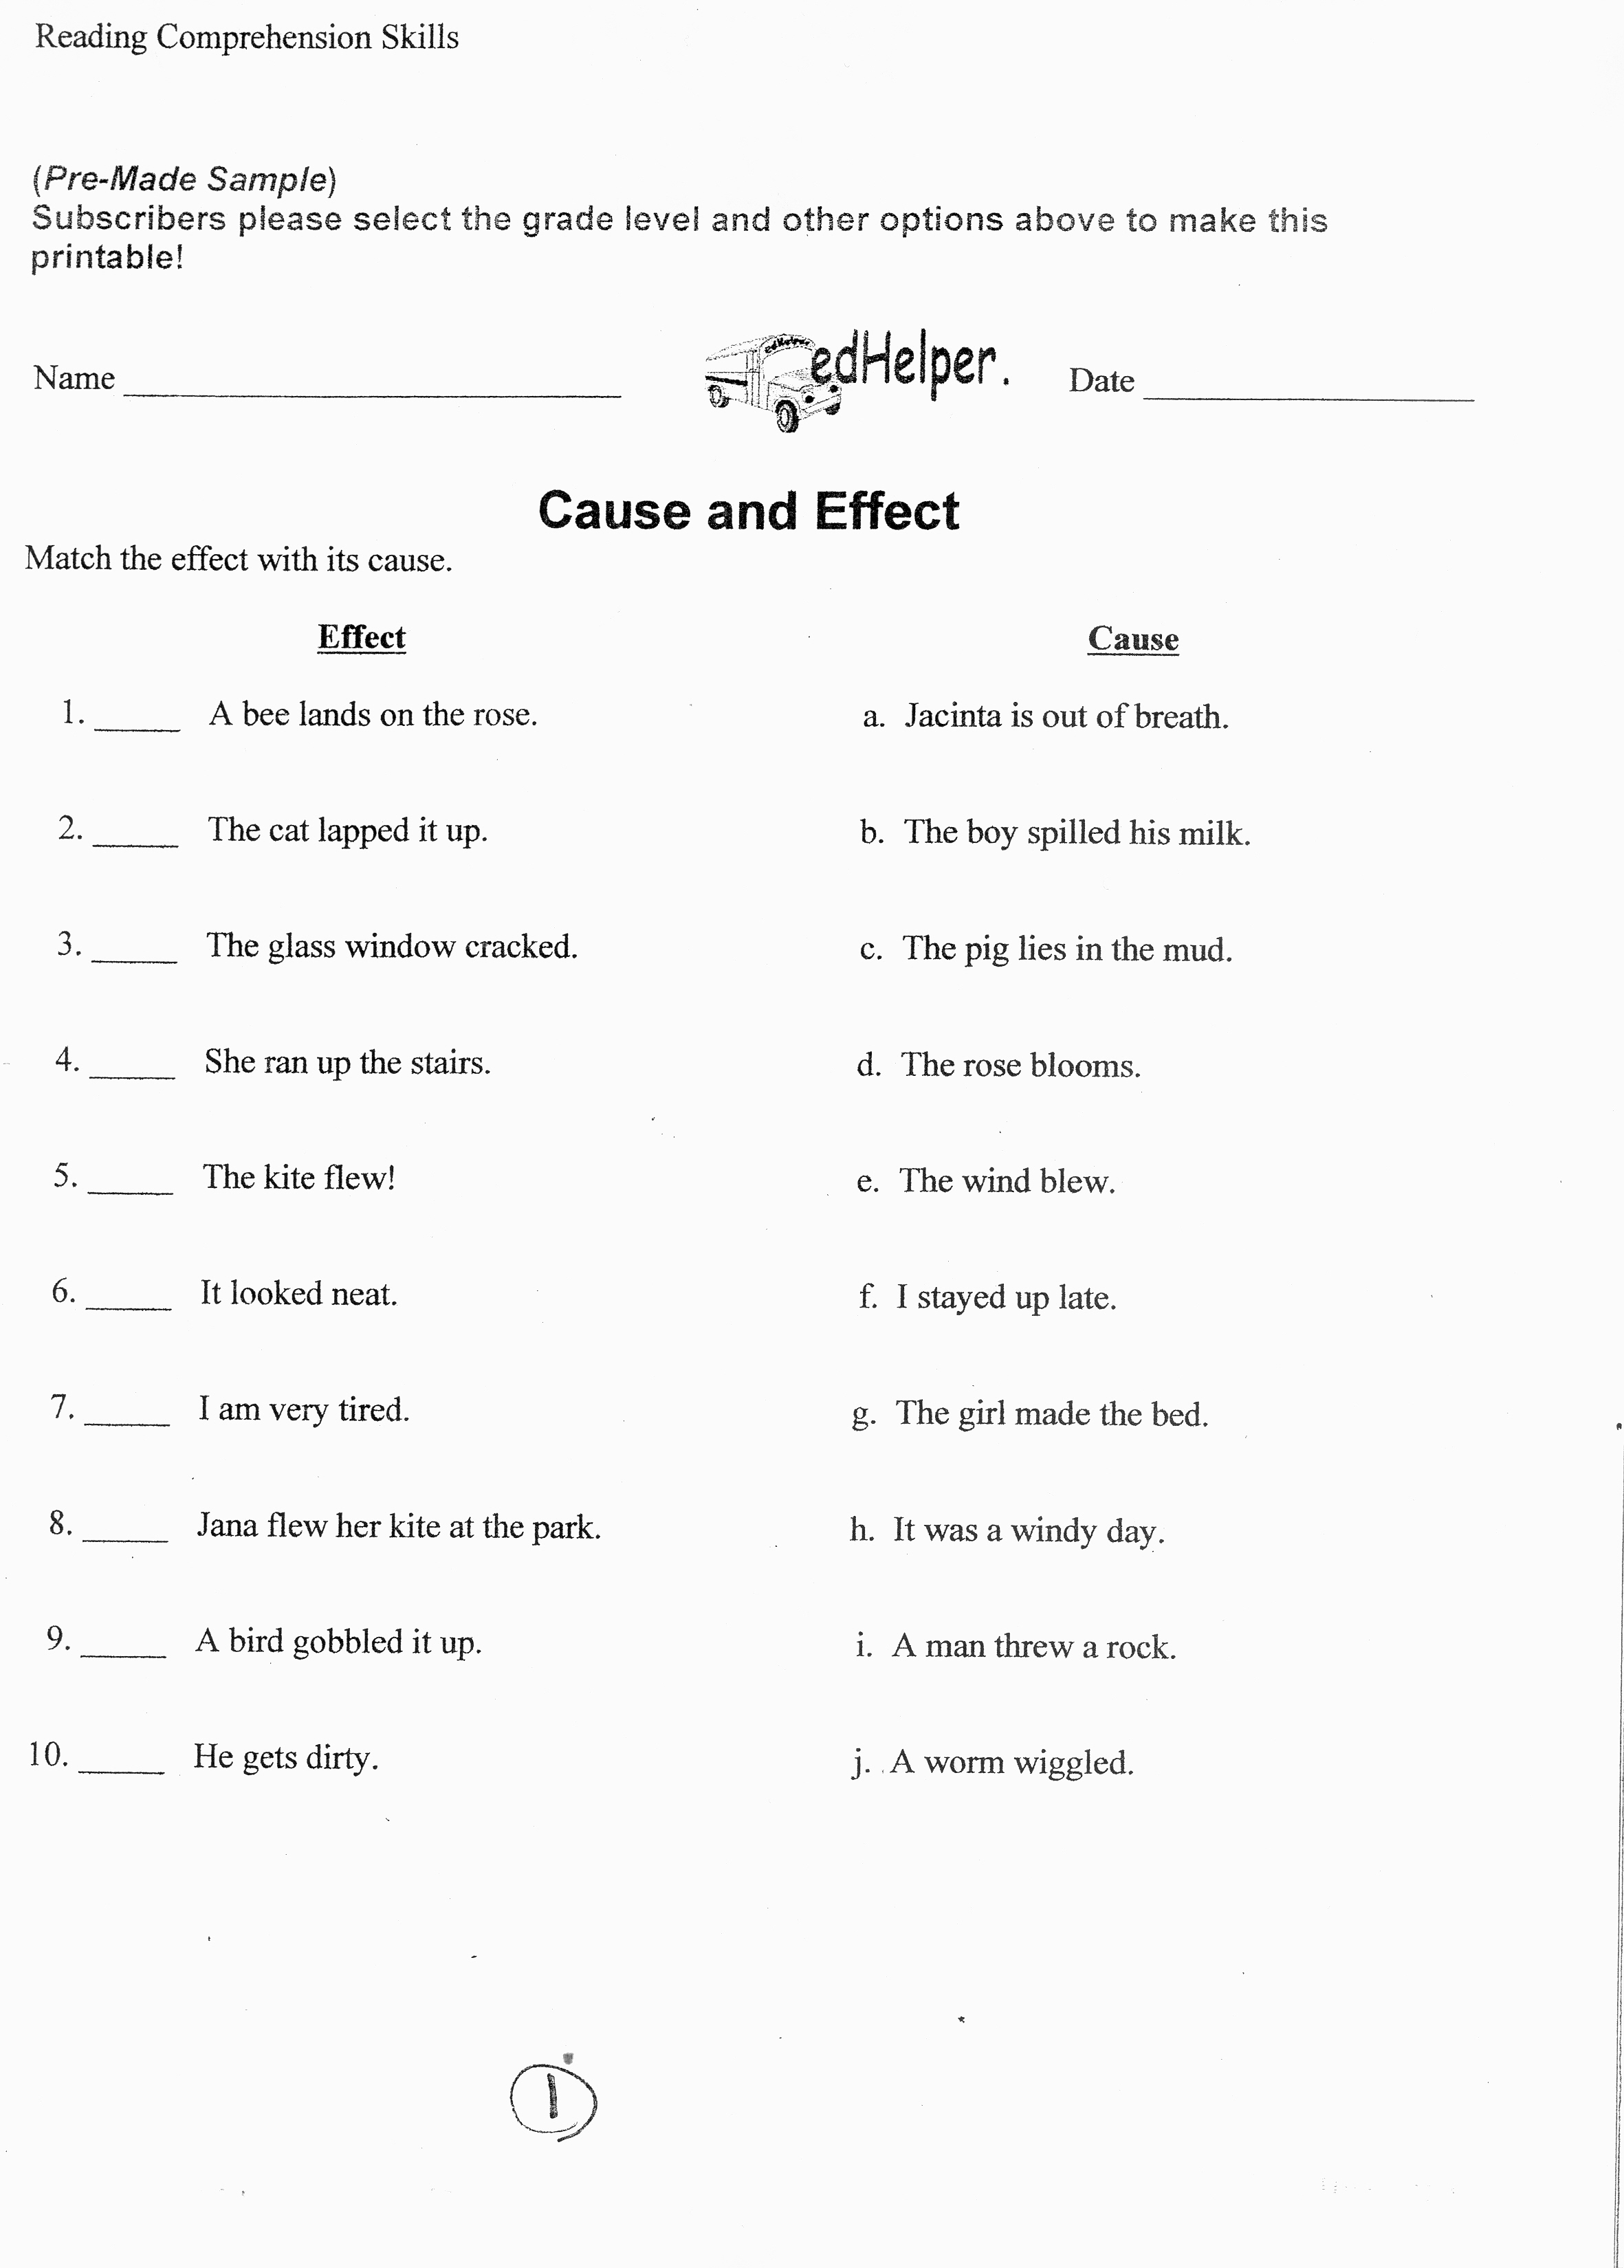 Cause and Effect Worksheet